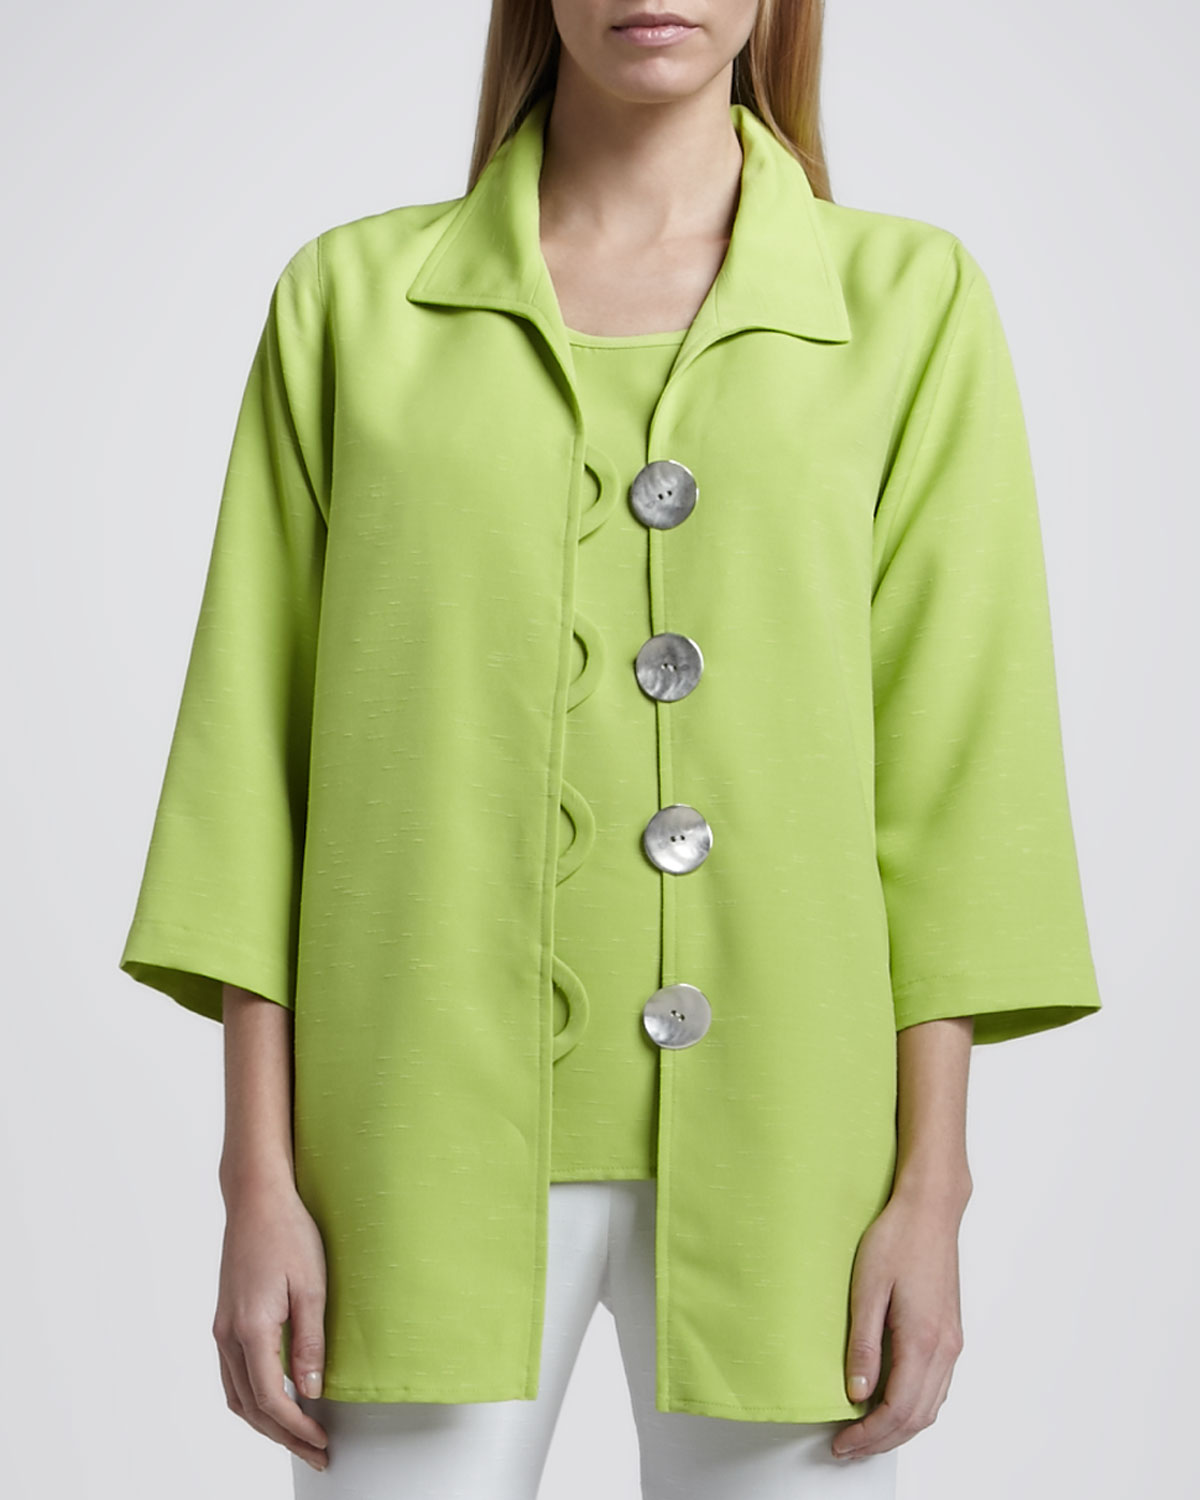 Womens Shantung Big Button Shirt, Petite   Caroline Rose   Lime (PL (12/14))